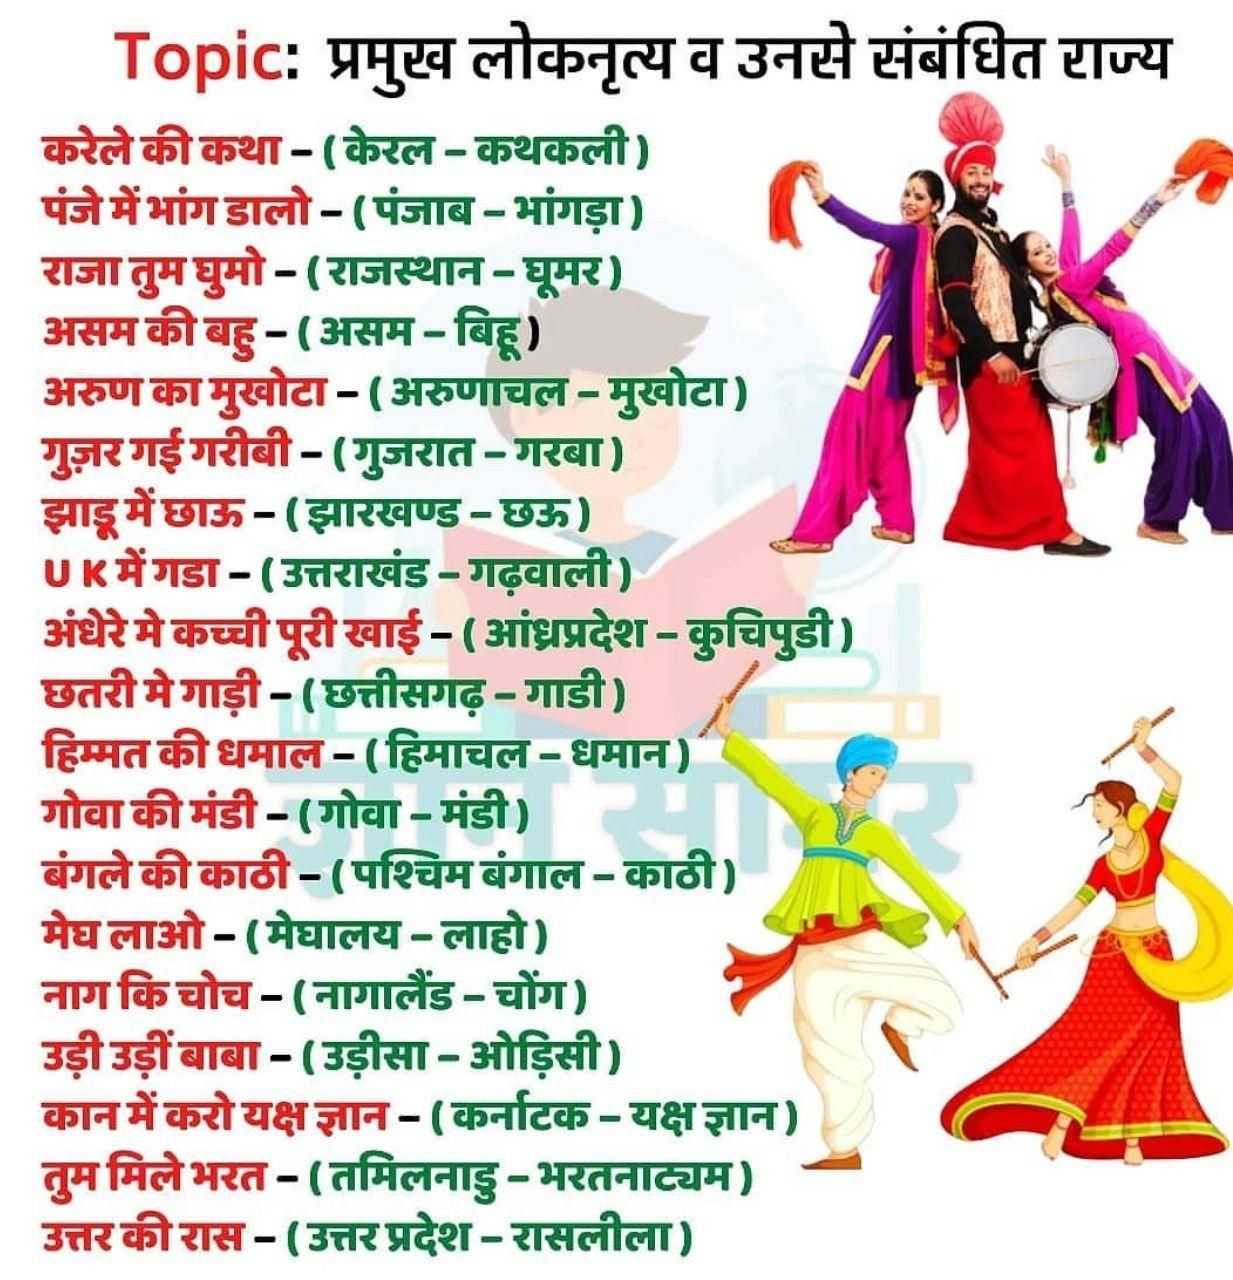 प रम ख ल क न त य ट र क स In 2020 Gk Knowledge General Knowledge Facts Gk Questions And Answers